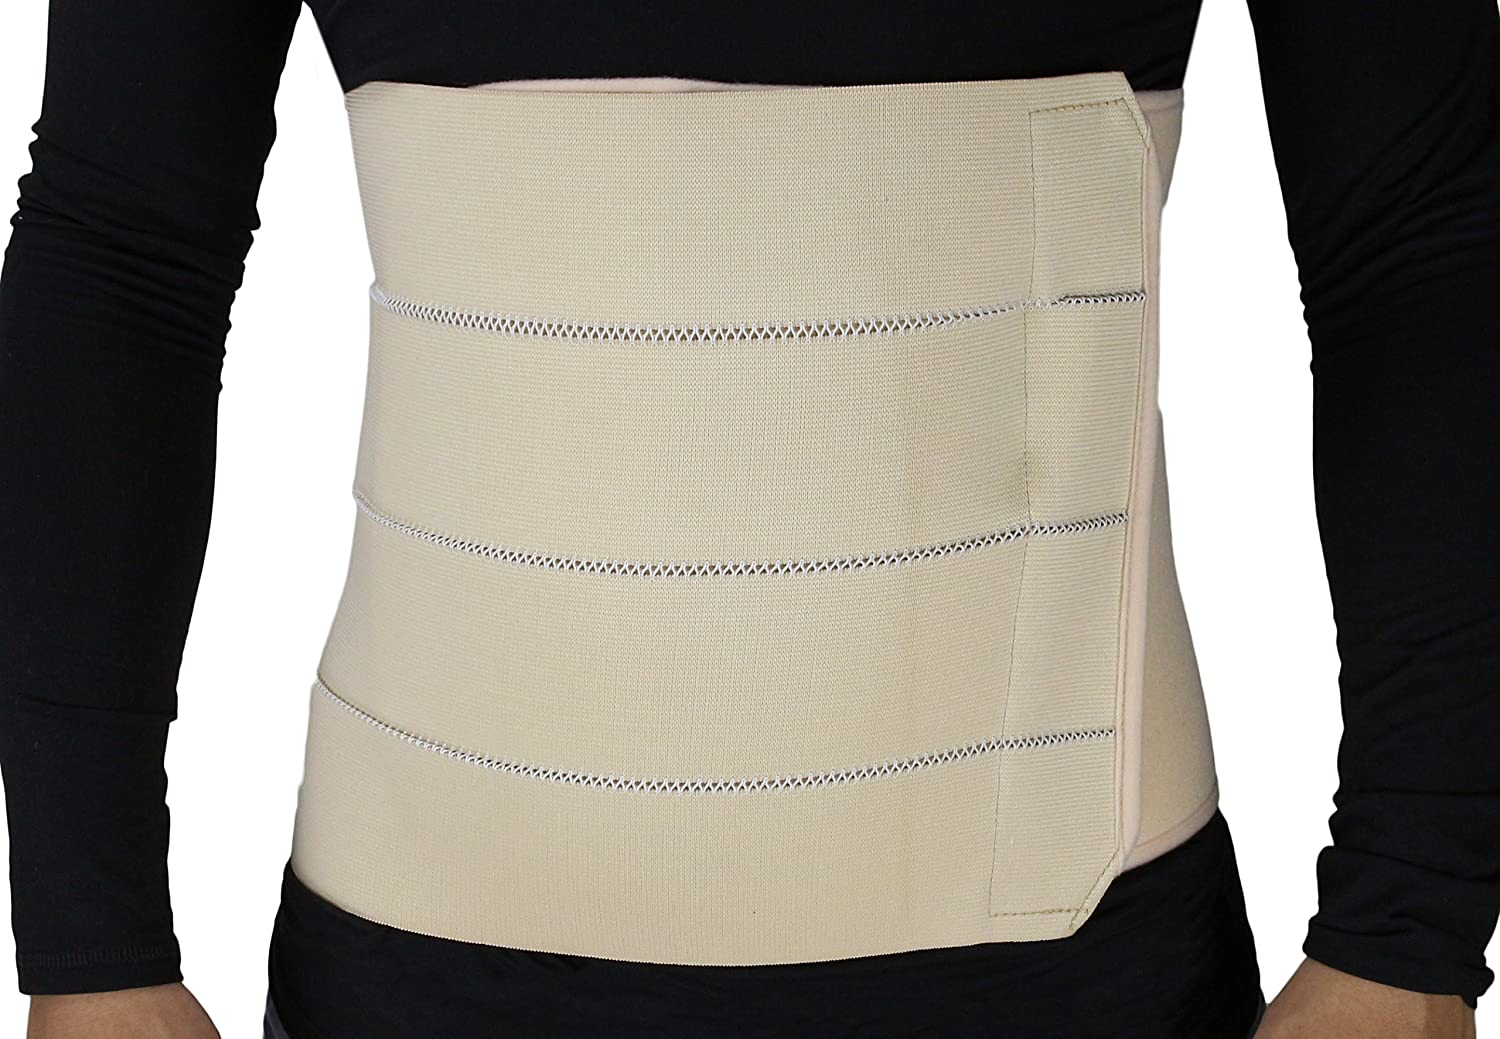 ObboMed® MB-2322NL 4- Panel Elastic Girdle Postope Postpartum New Ranking TOP17 Orleans Mall